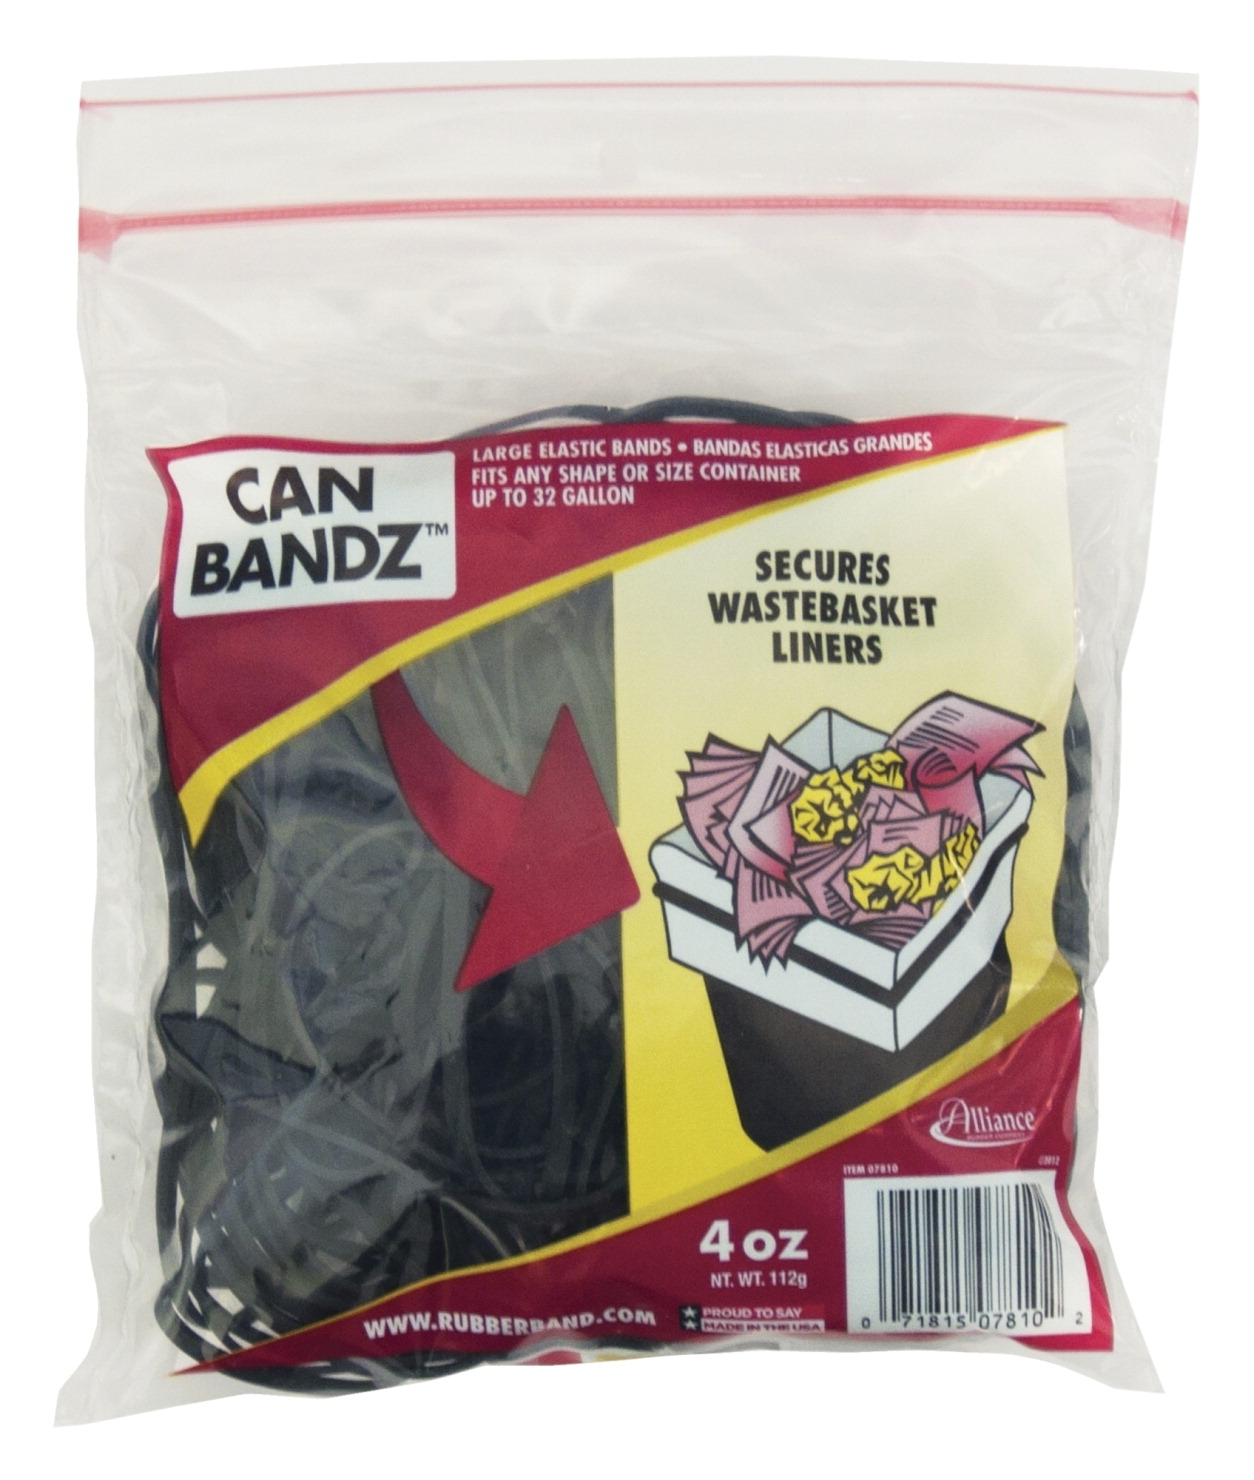 Facilities Waste Supplies & Recycling Covers & Bags & Liners - 086609 - Alliance Rubber Company Bandz Can; 32 Gal; 1/4 Lb Bag; Large; 7 X 1/8 In; Rubber/plastic; Black; Pack Of 50 086609